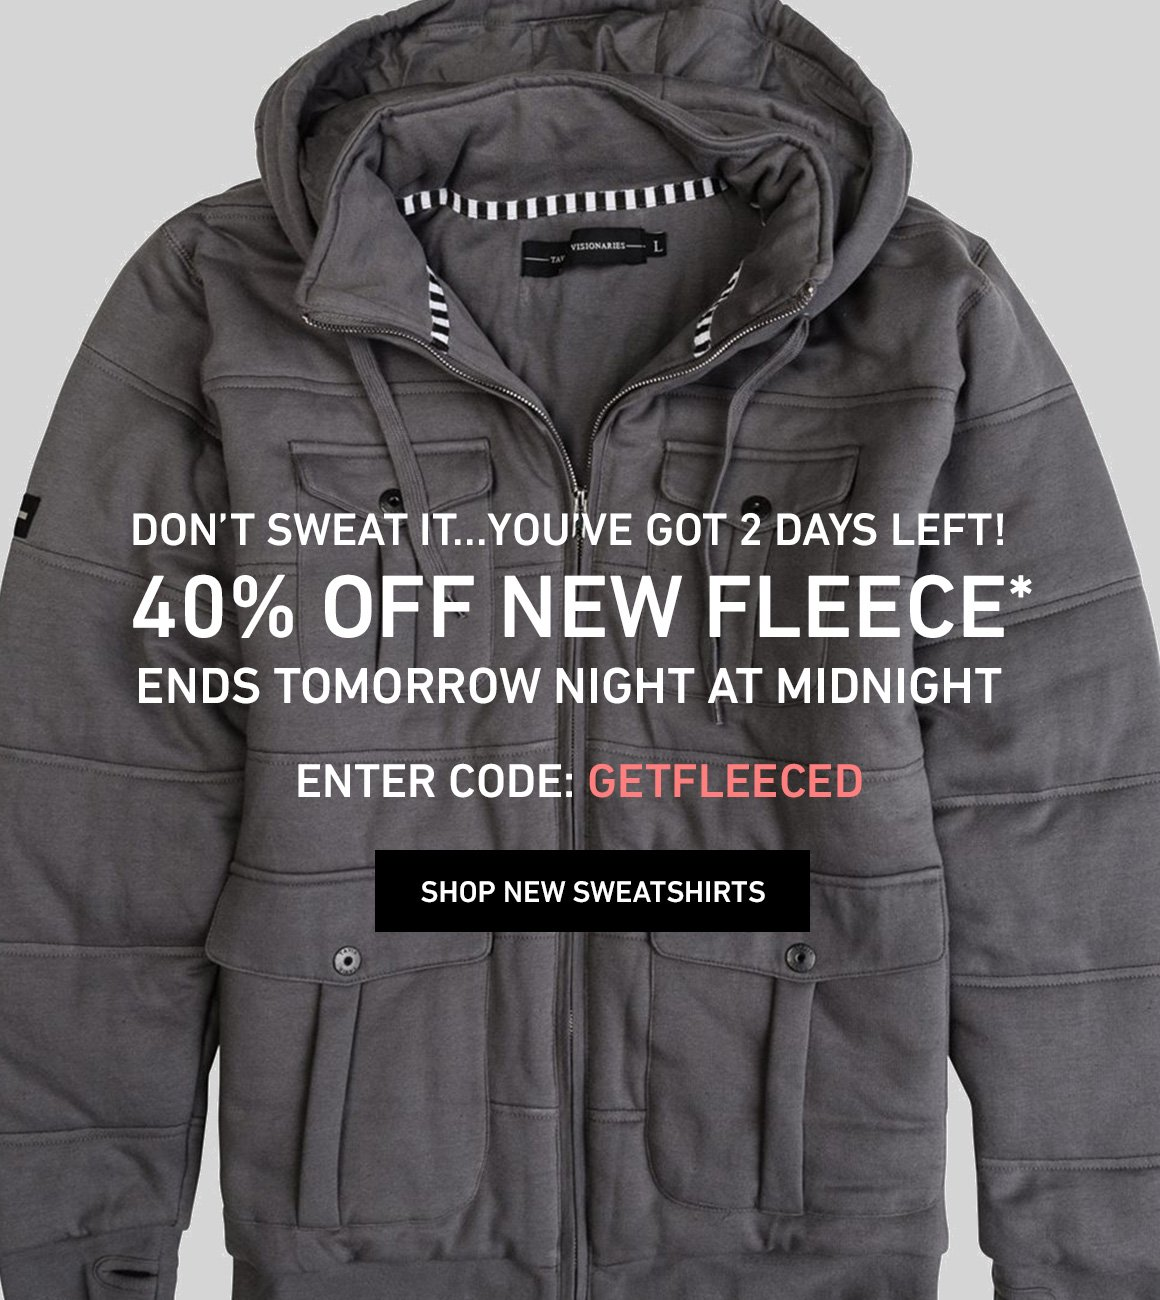 2 Days Left: 40% Off Fleece! Enter Code: GETFLEECED